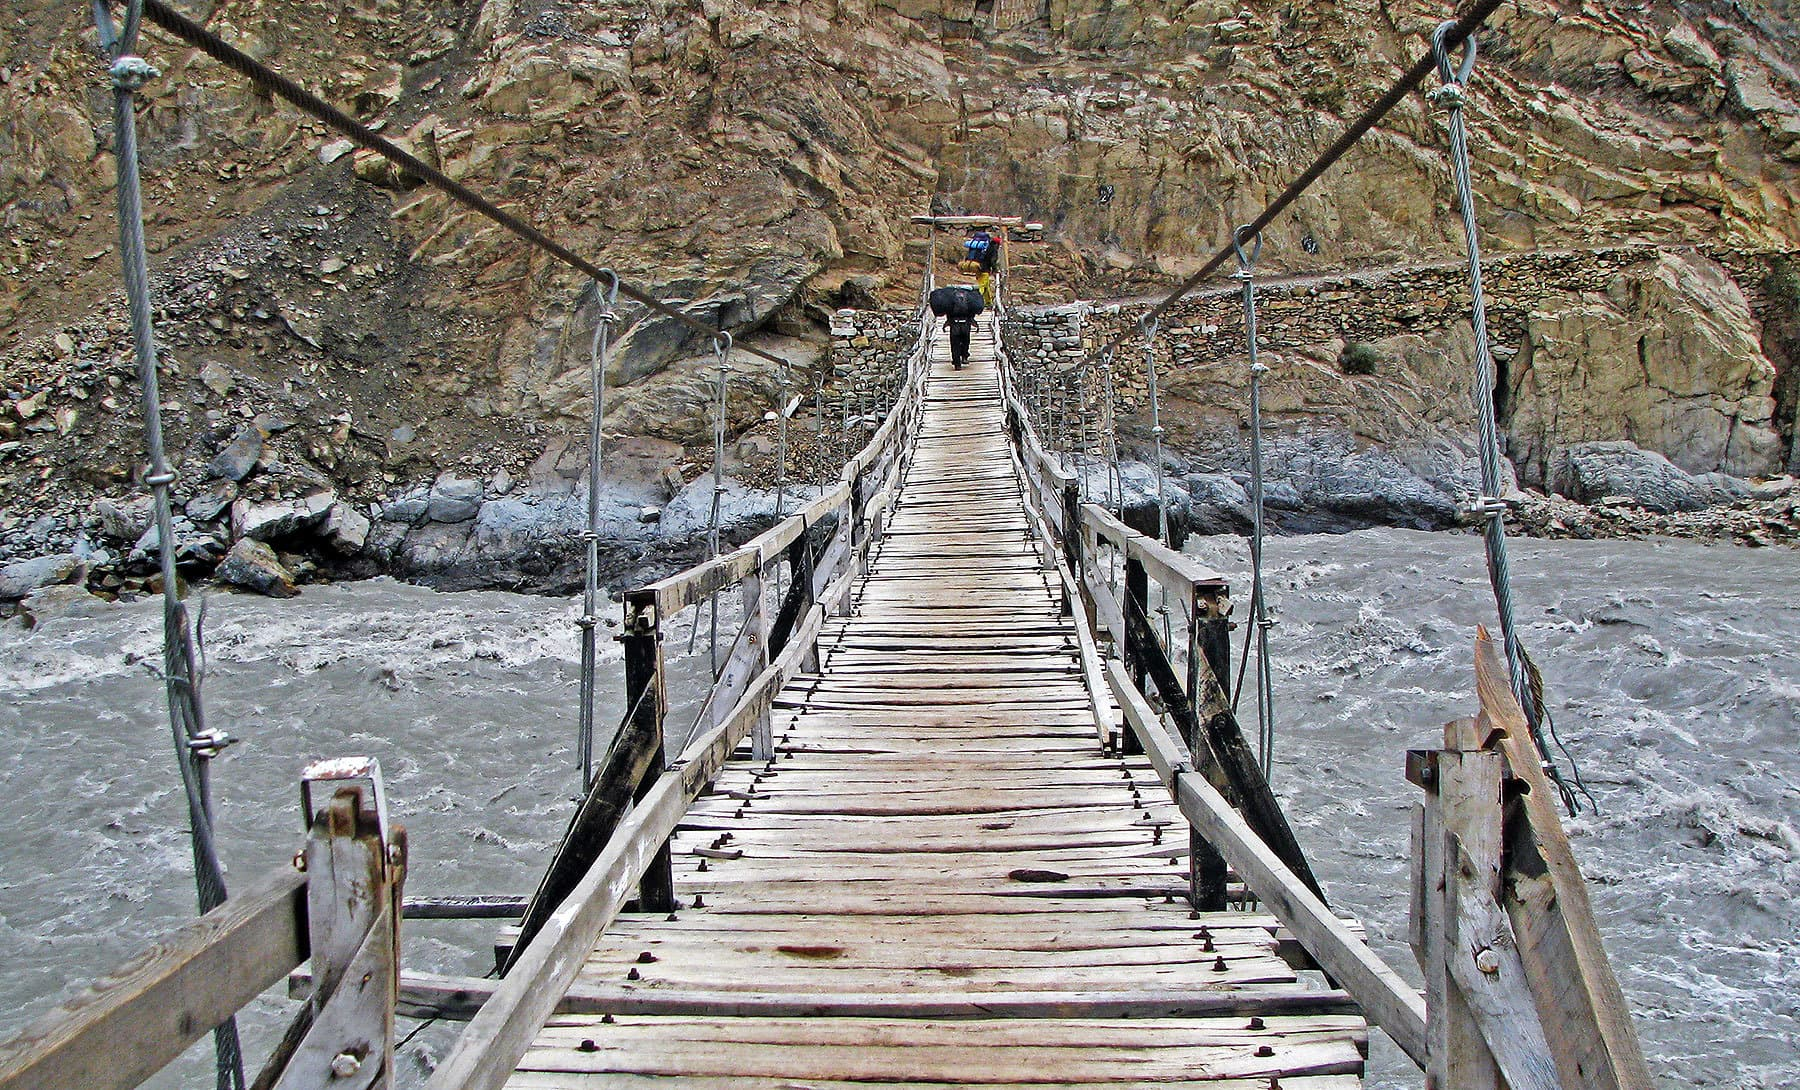 The wooden suspension bridge that connects Shimshal to all places beyond the mighty Shimshal River.